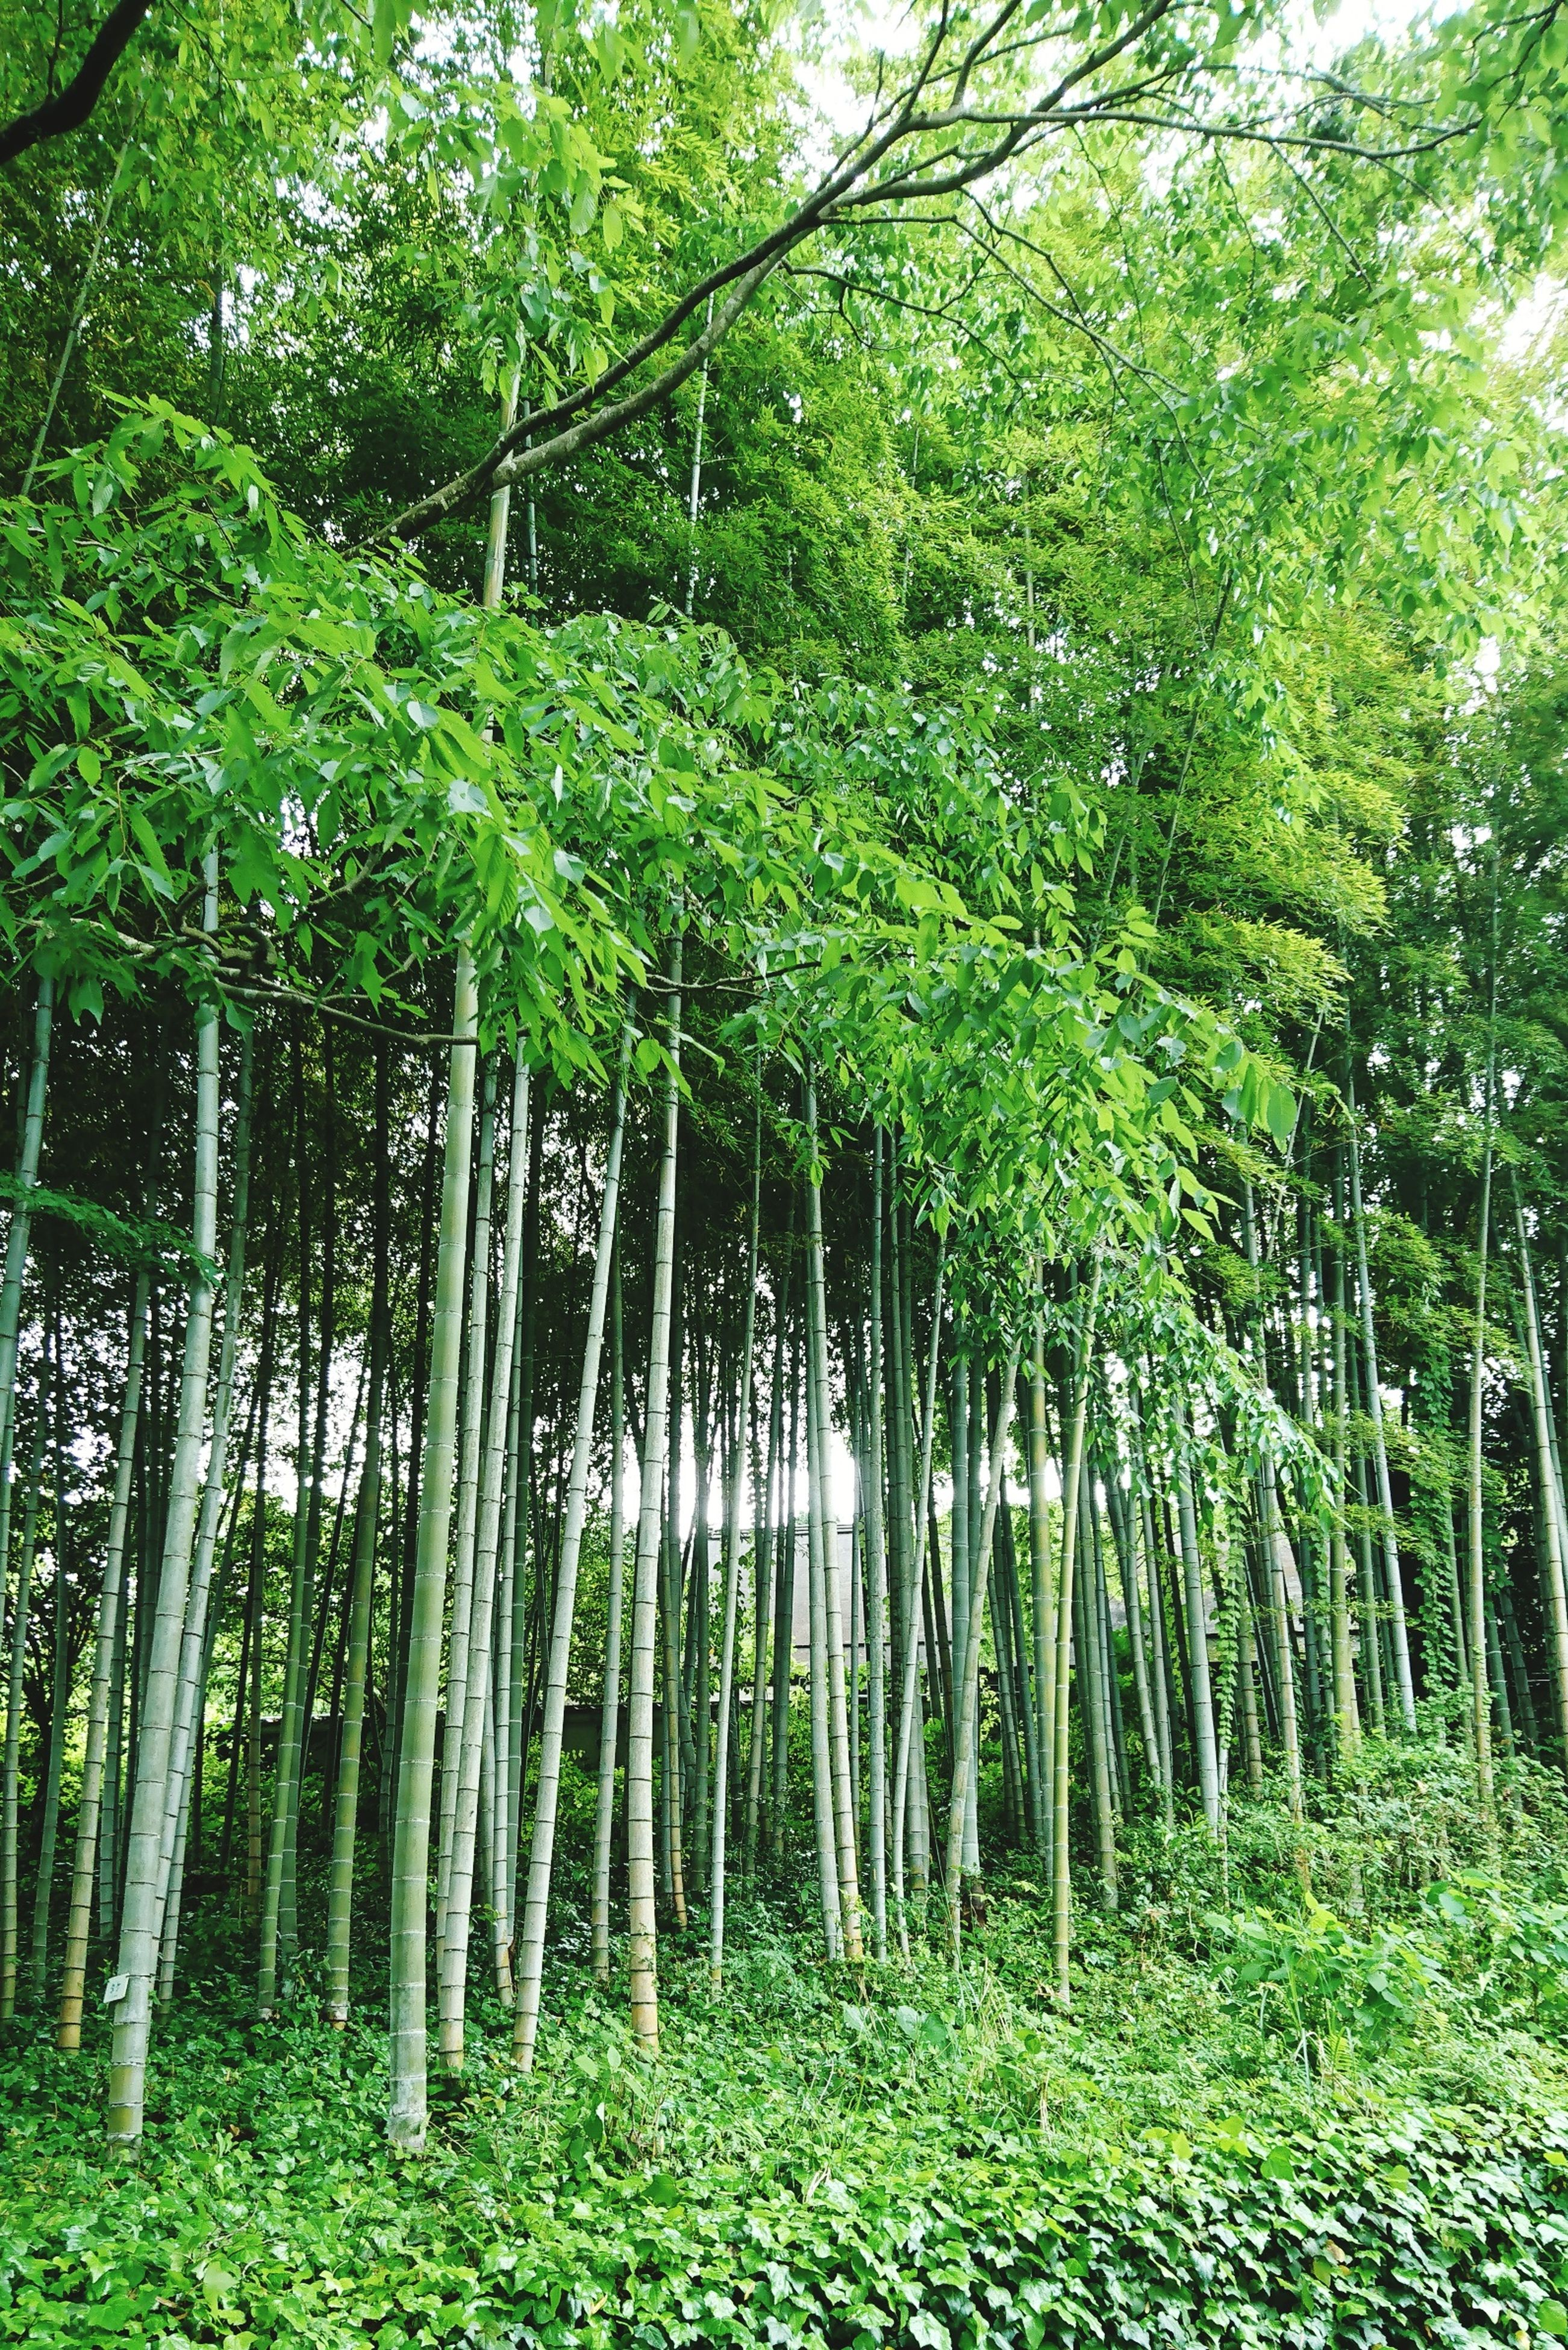 forest, nature, tree, growth, green color, green, bamboo - plant, bamboo grove, water, tranquility, outdoors, beauty in nature, no people, lush foliage, scenics, grass, day